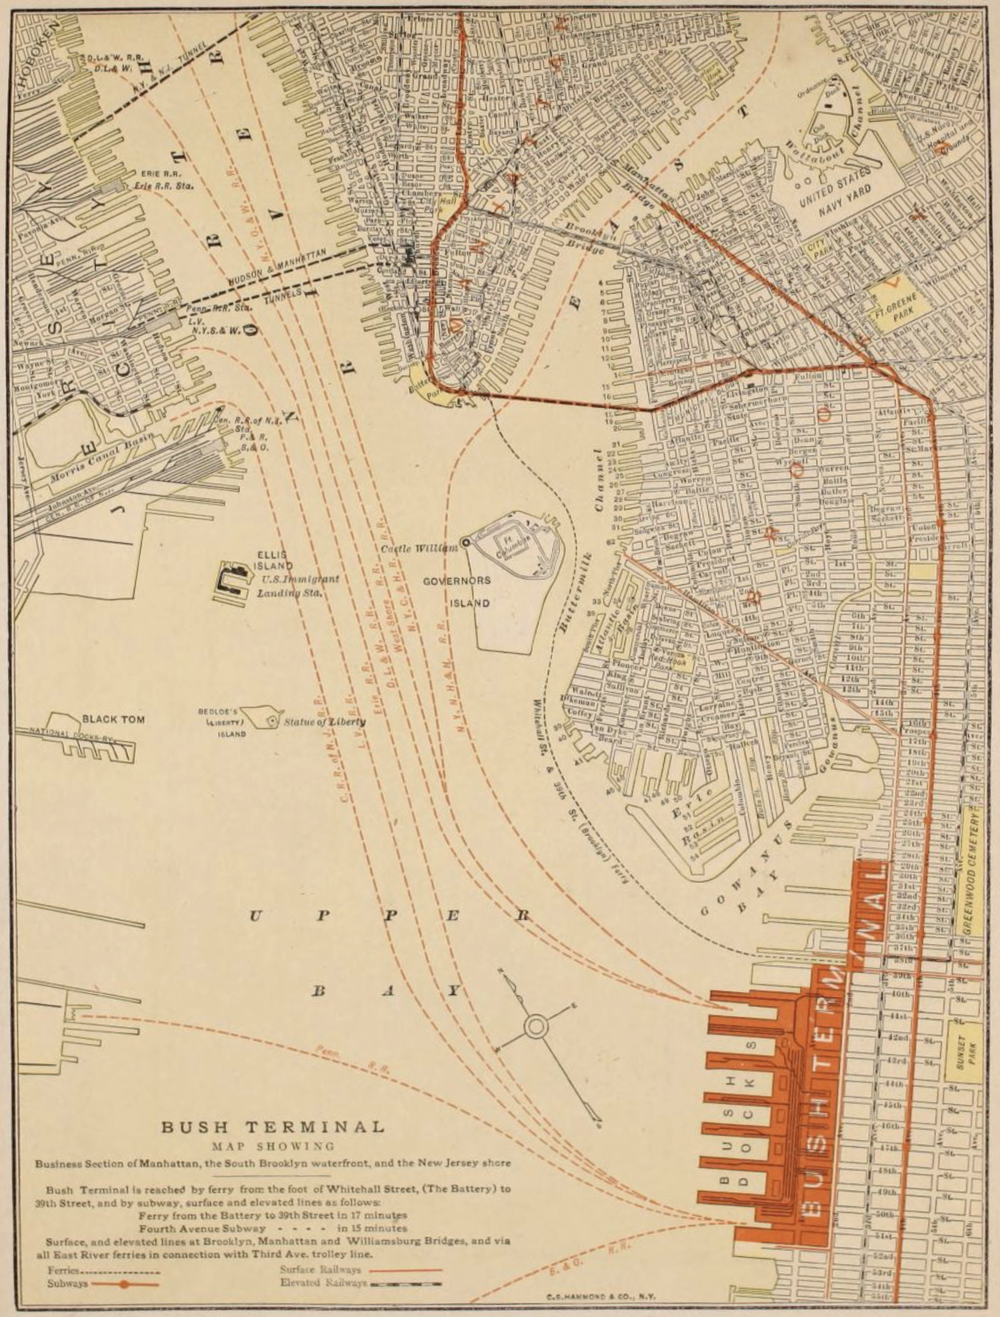 Map of Bush Terminal from  Economy: Making Dividends by Saving Them,  Bush Terminal Company, 1910.  NYC Municipal Archives.